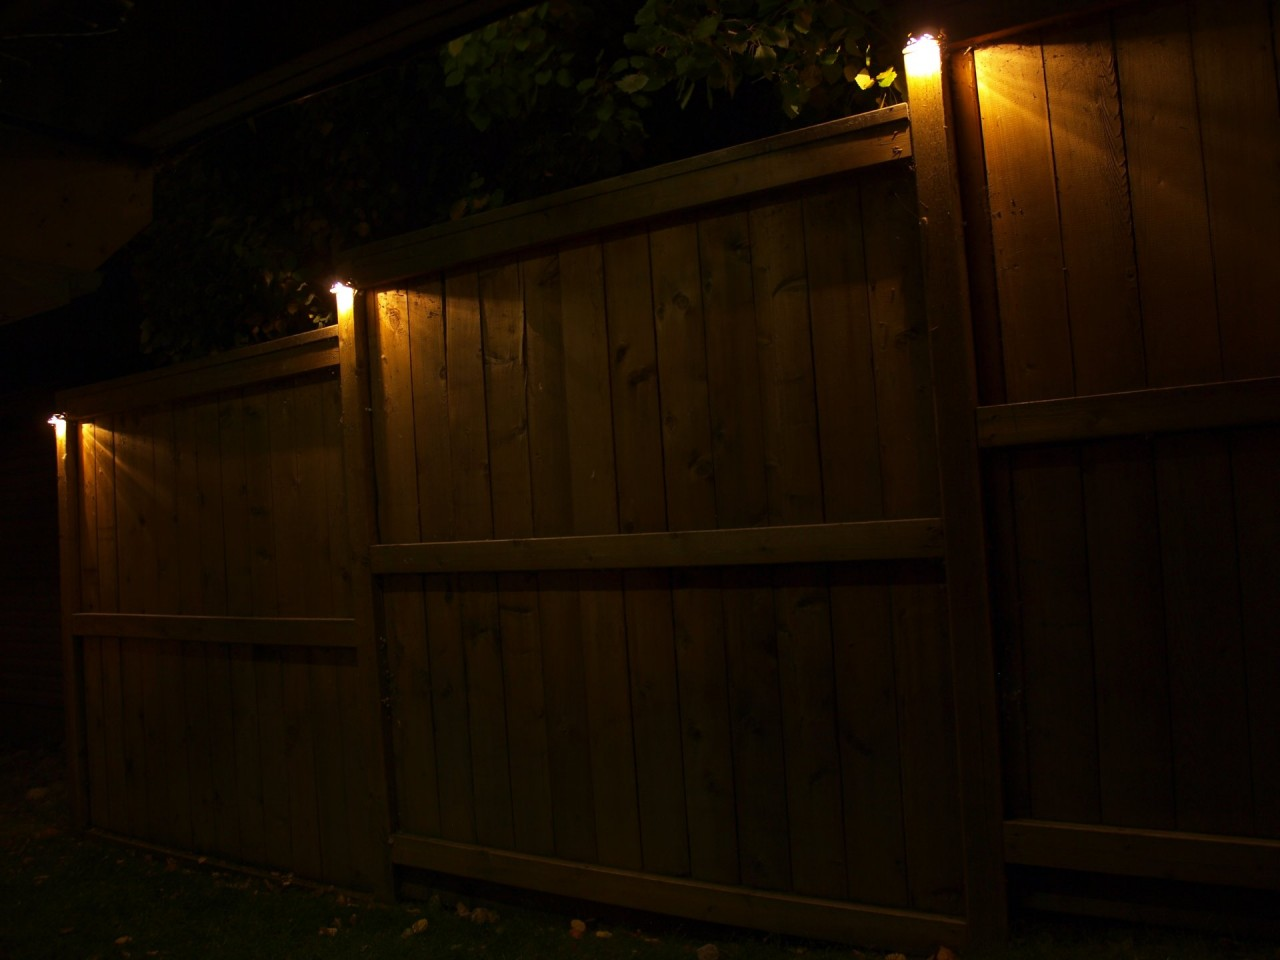 Cup Lights Mounted On Fence Posts Illuminate The Way